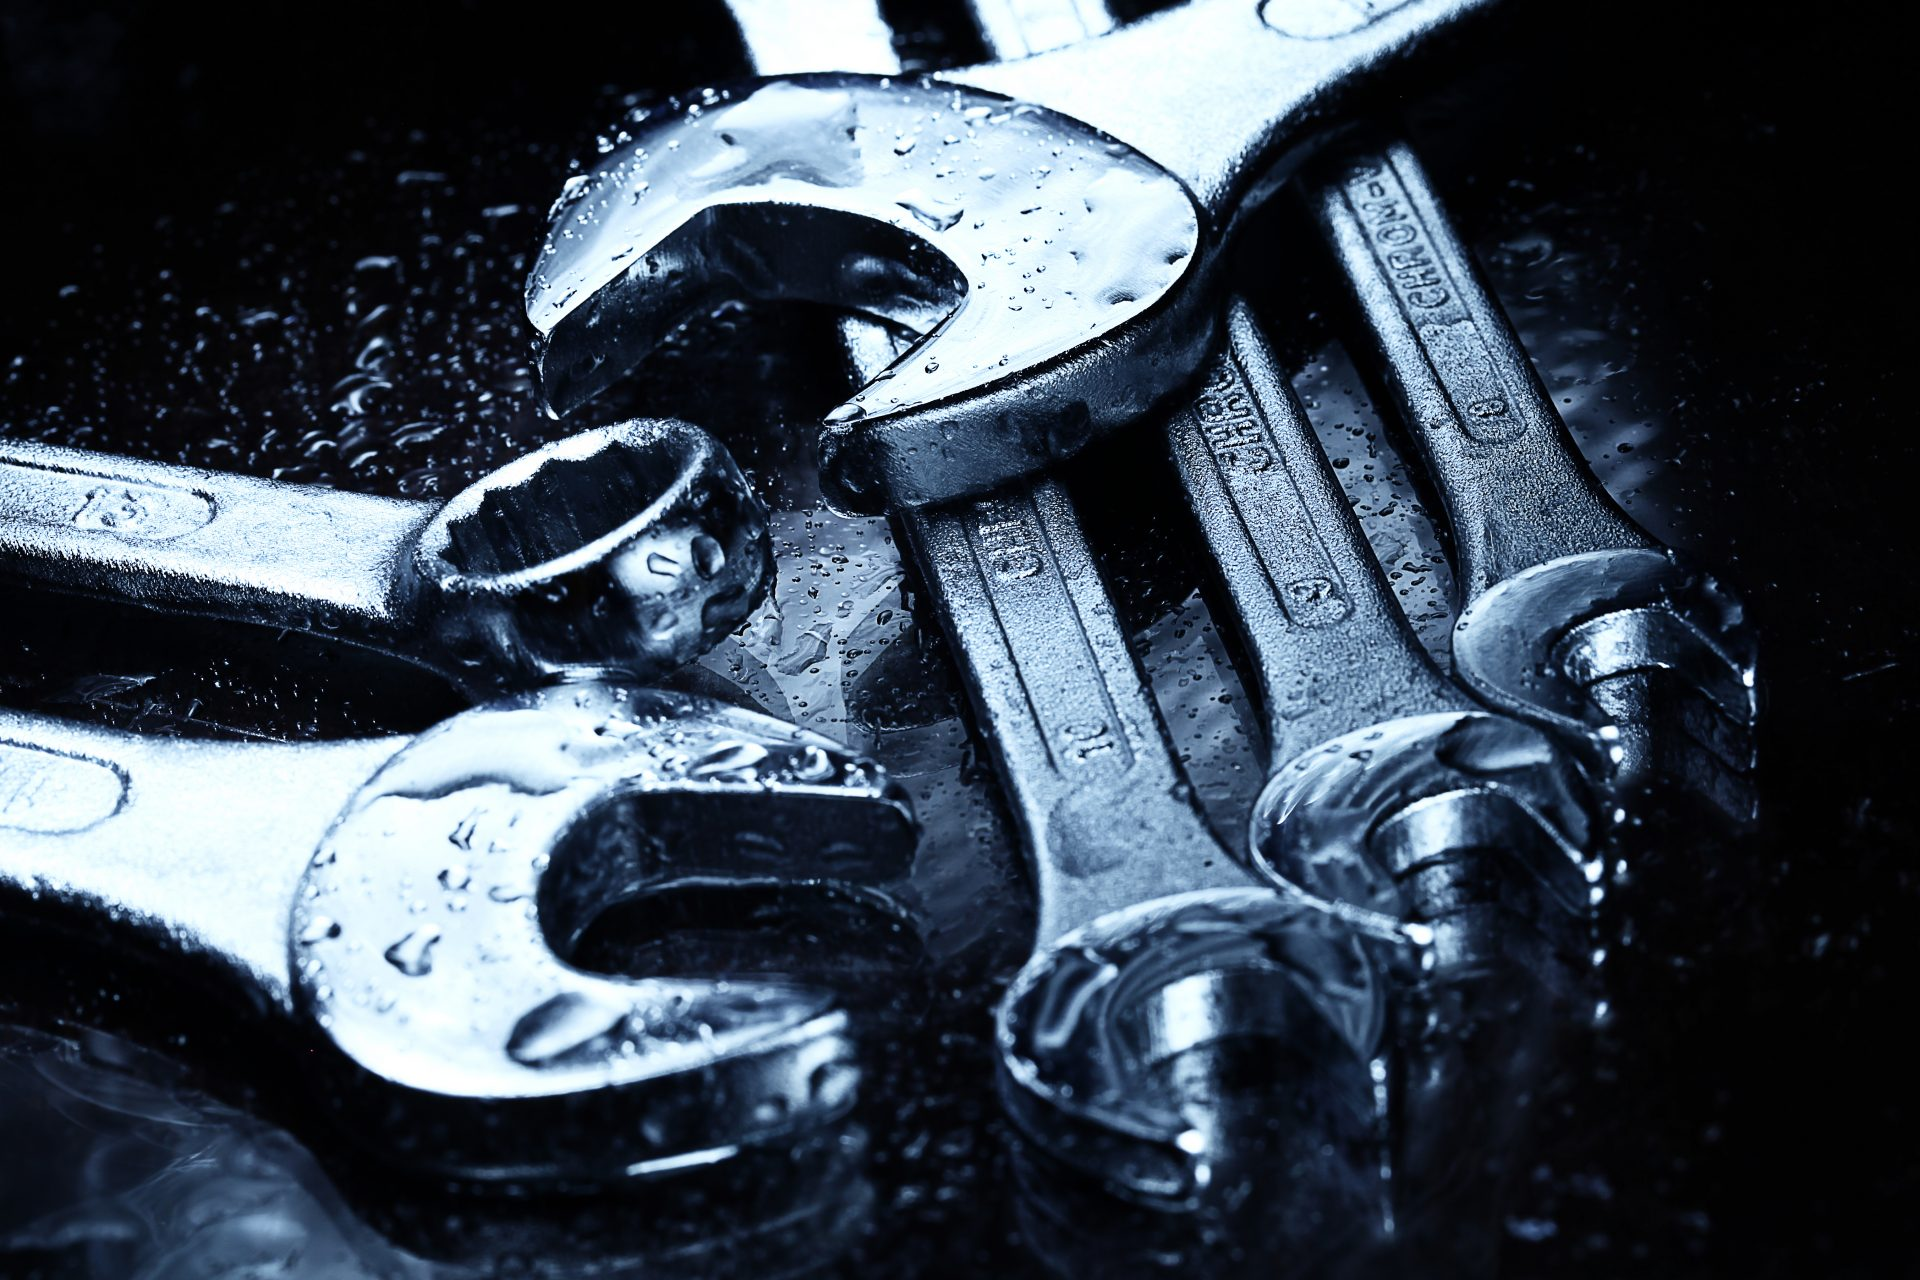 steel-wrenches-tools(1)